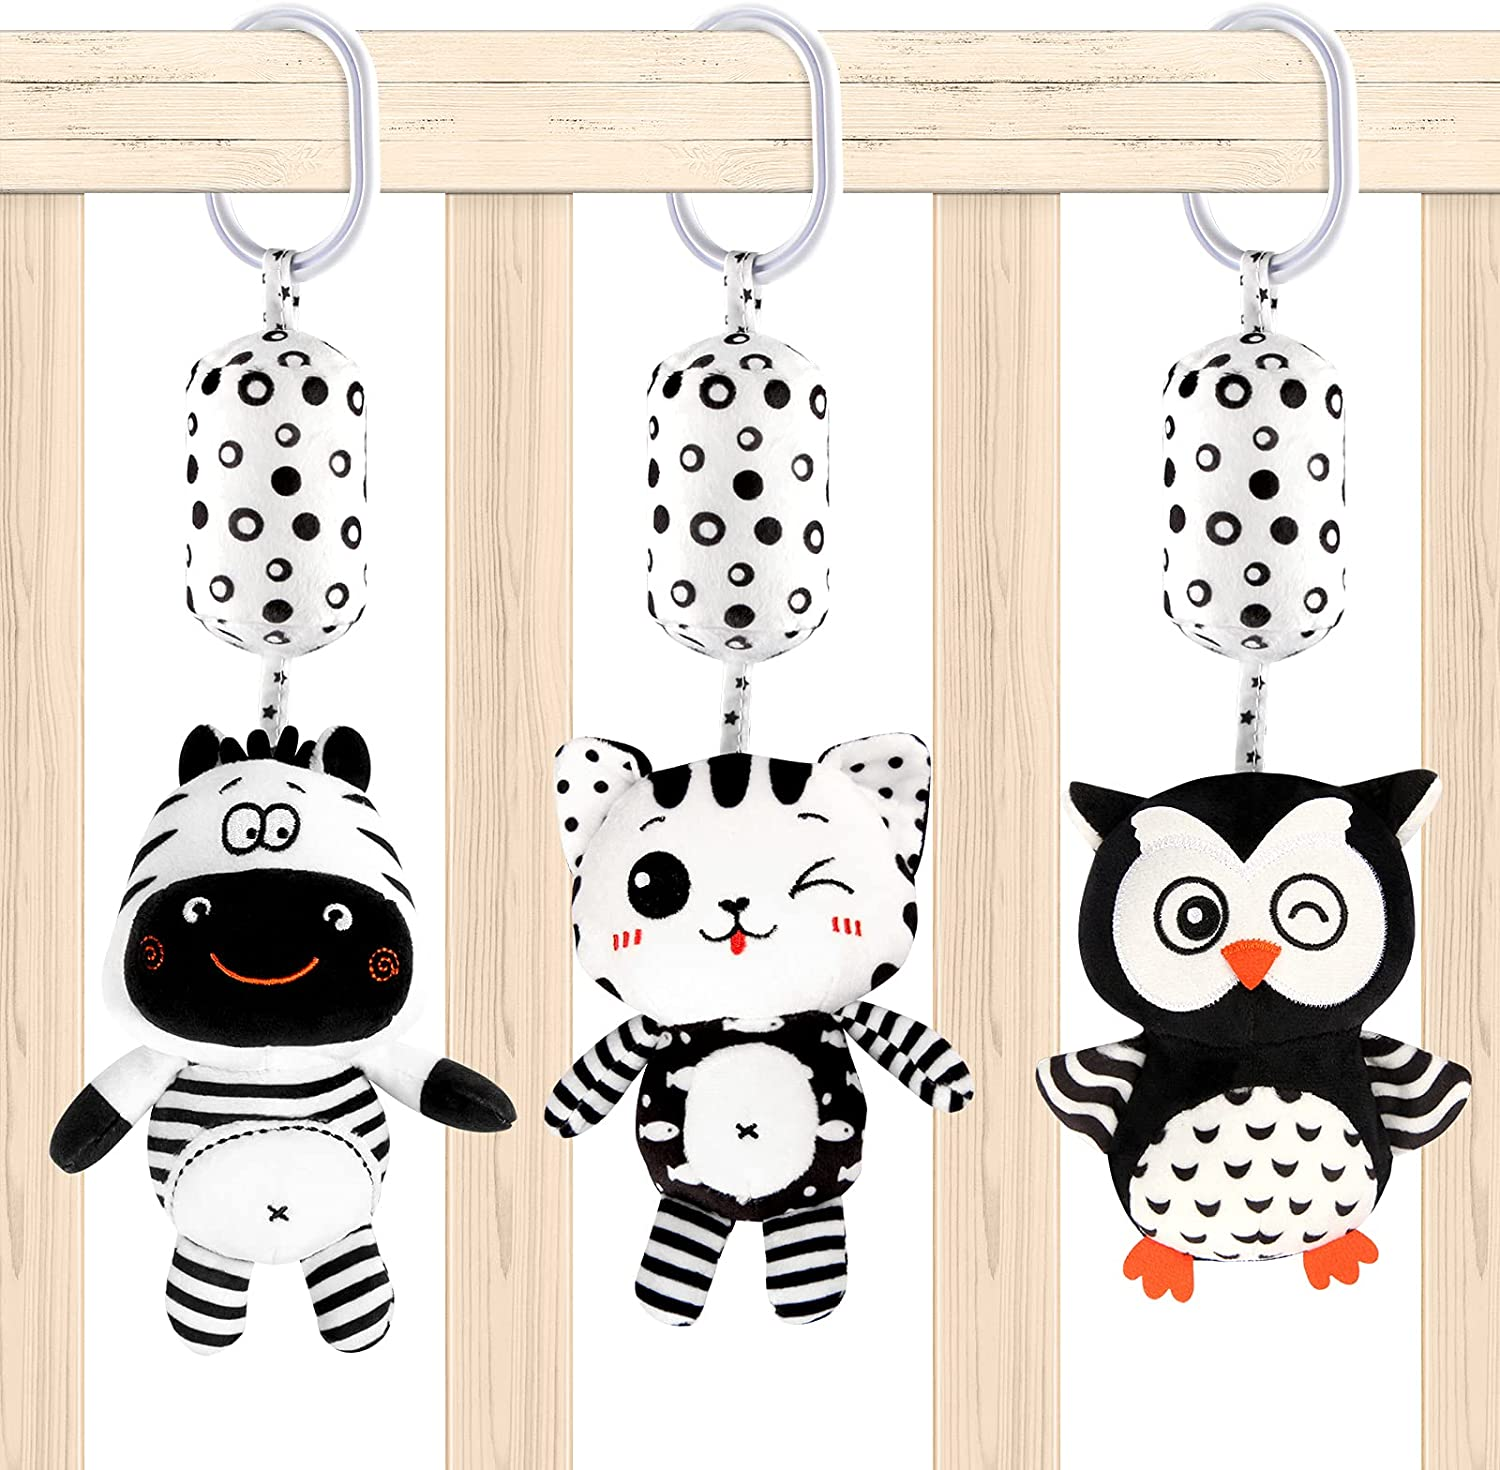 ZEIZRWK Hanging Rattles Toys White & Black Stroller Toy, Newborn Toys Infant Toys Crib Toys, Soft Plush for Stroller Car Seat Crib with Wind Chimes, Baby Gift for 0,3,6,9,12,18 Months(Cat owl Zebra)